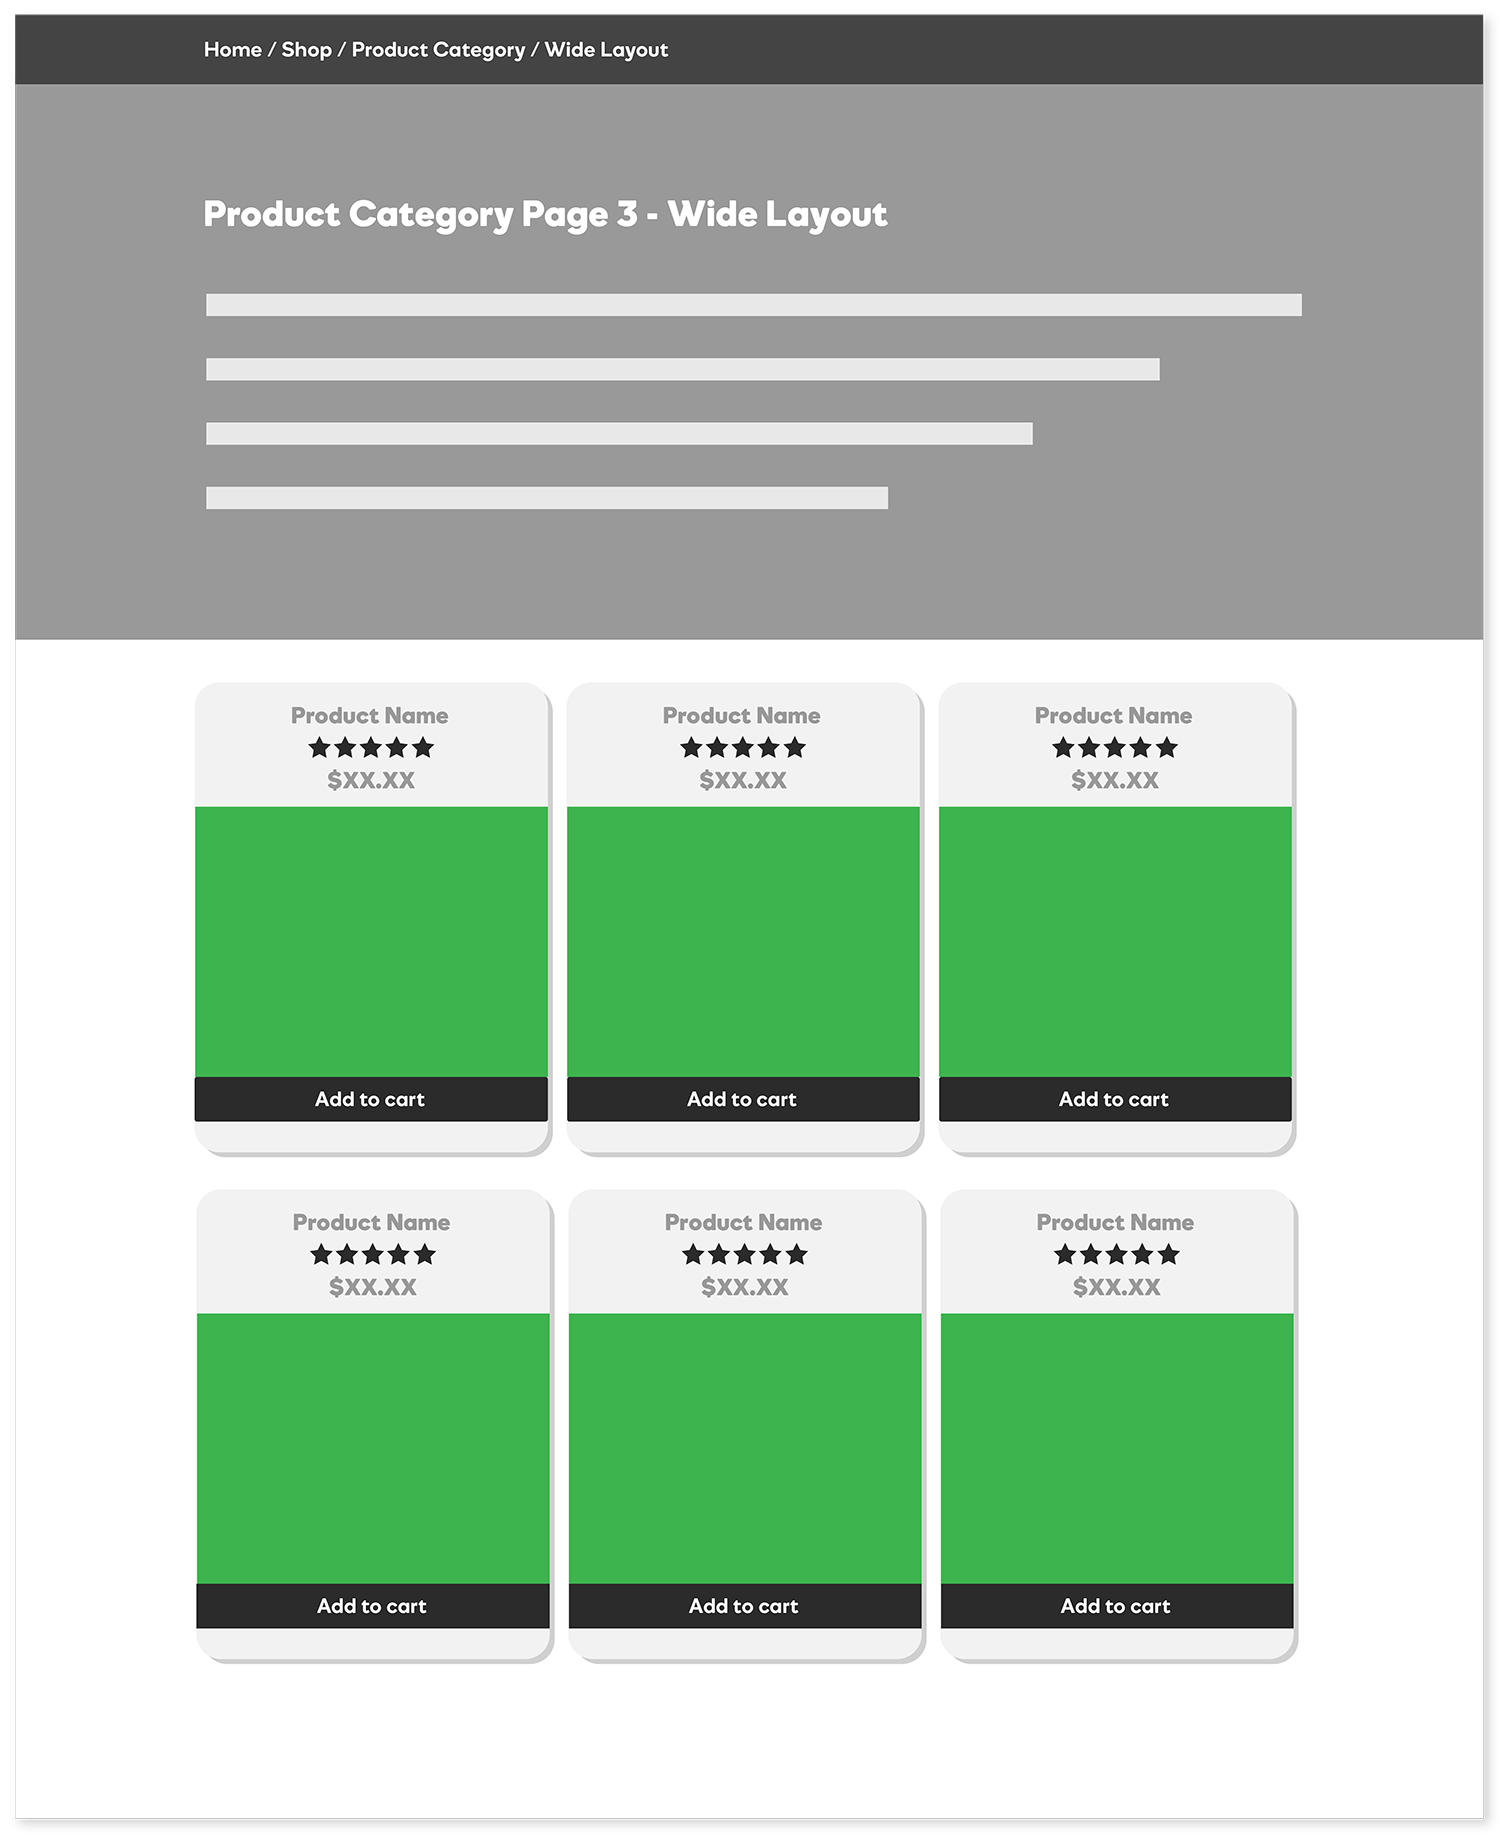 Product Category Page - Wide